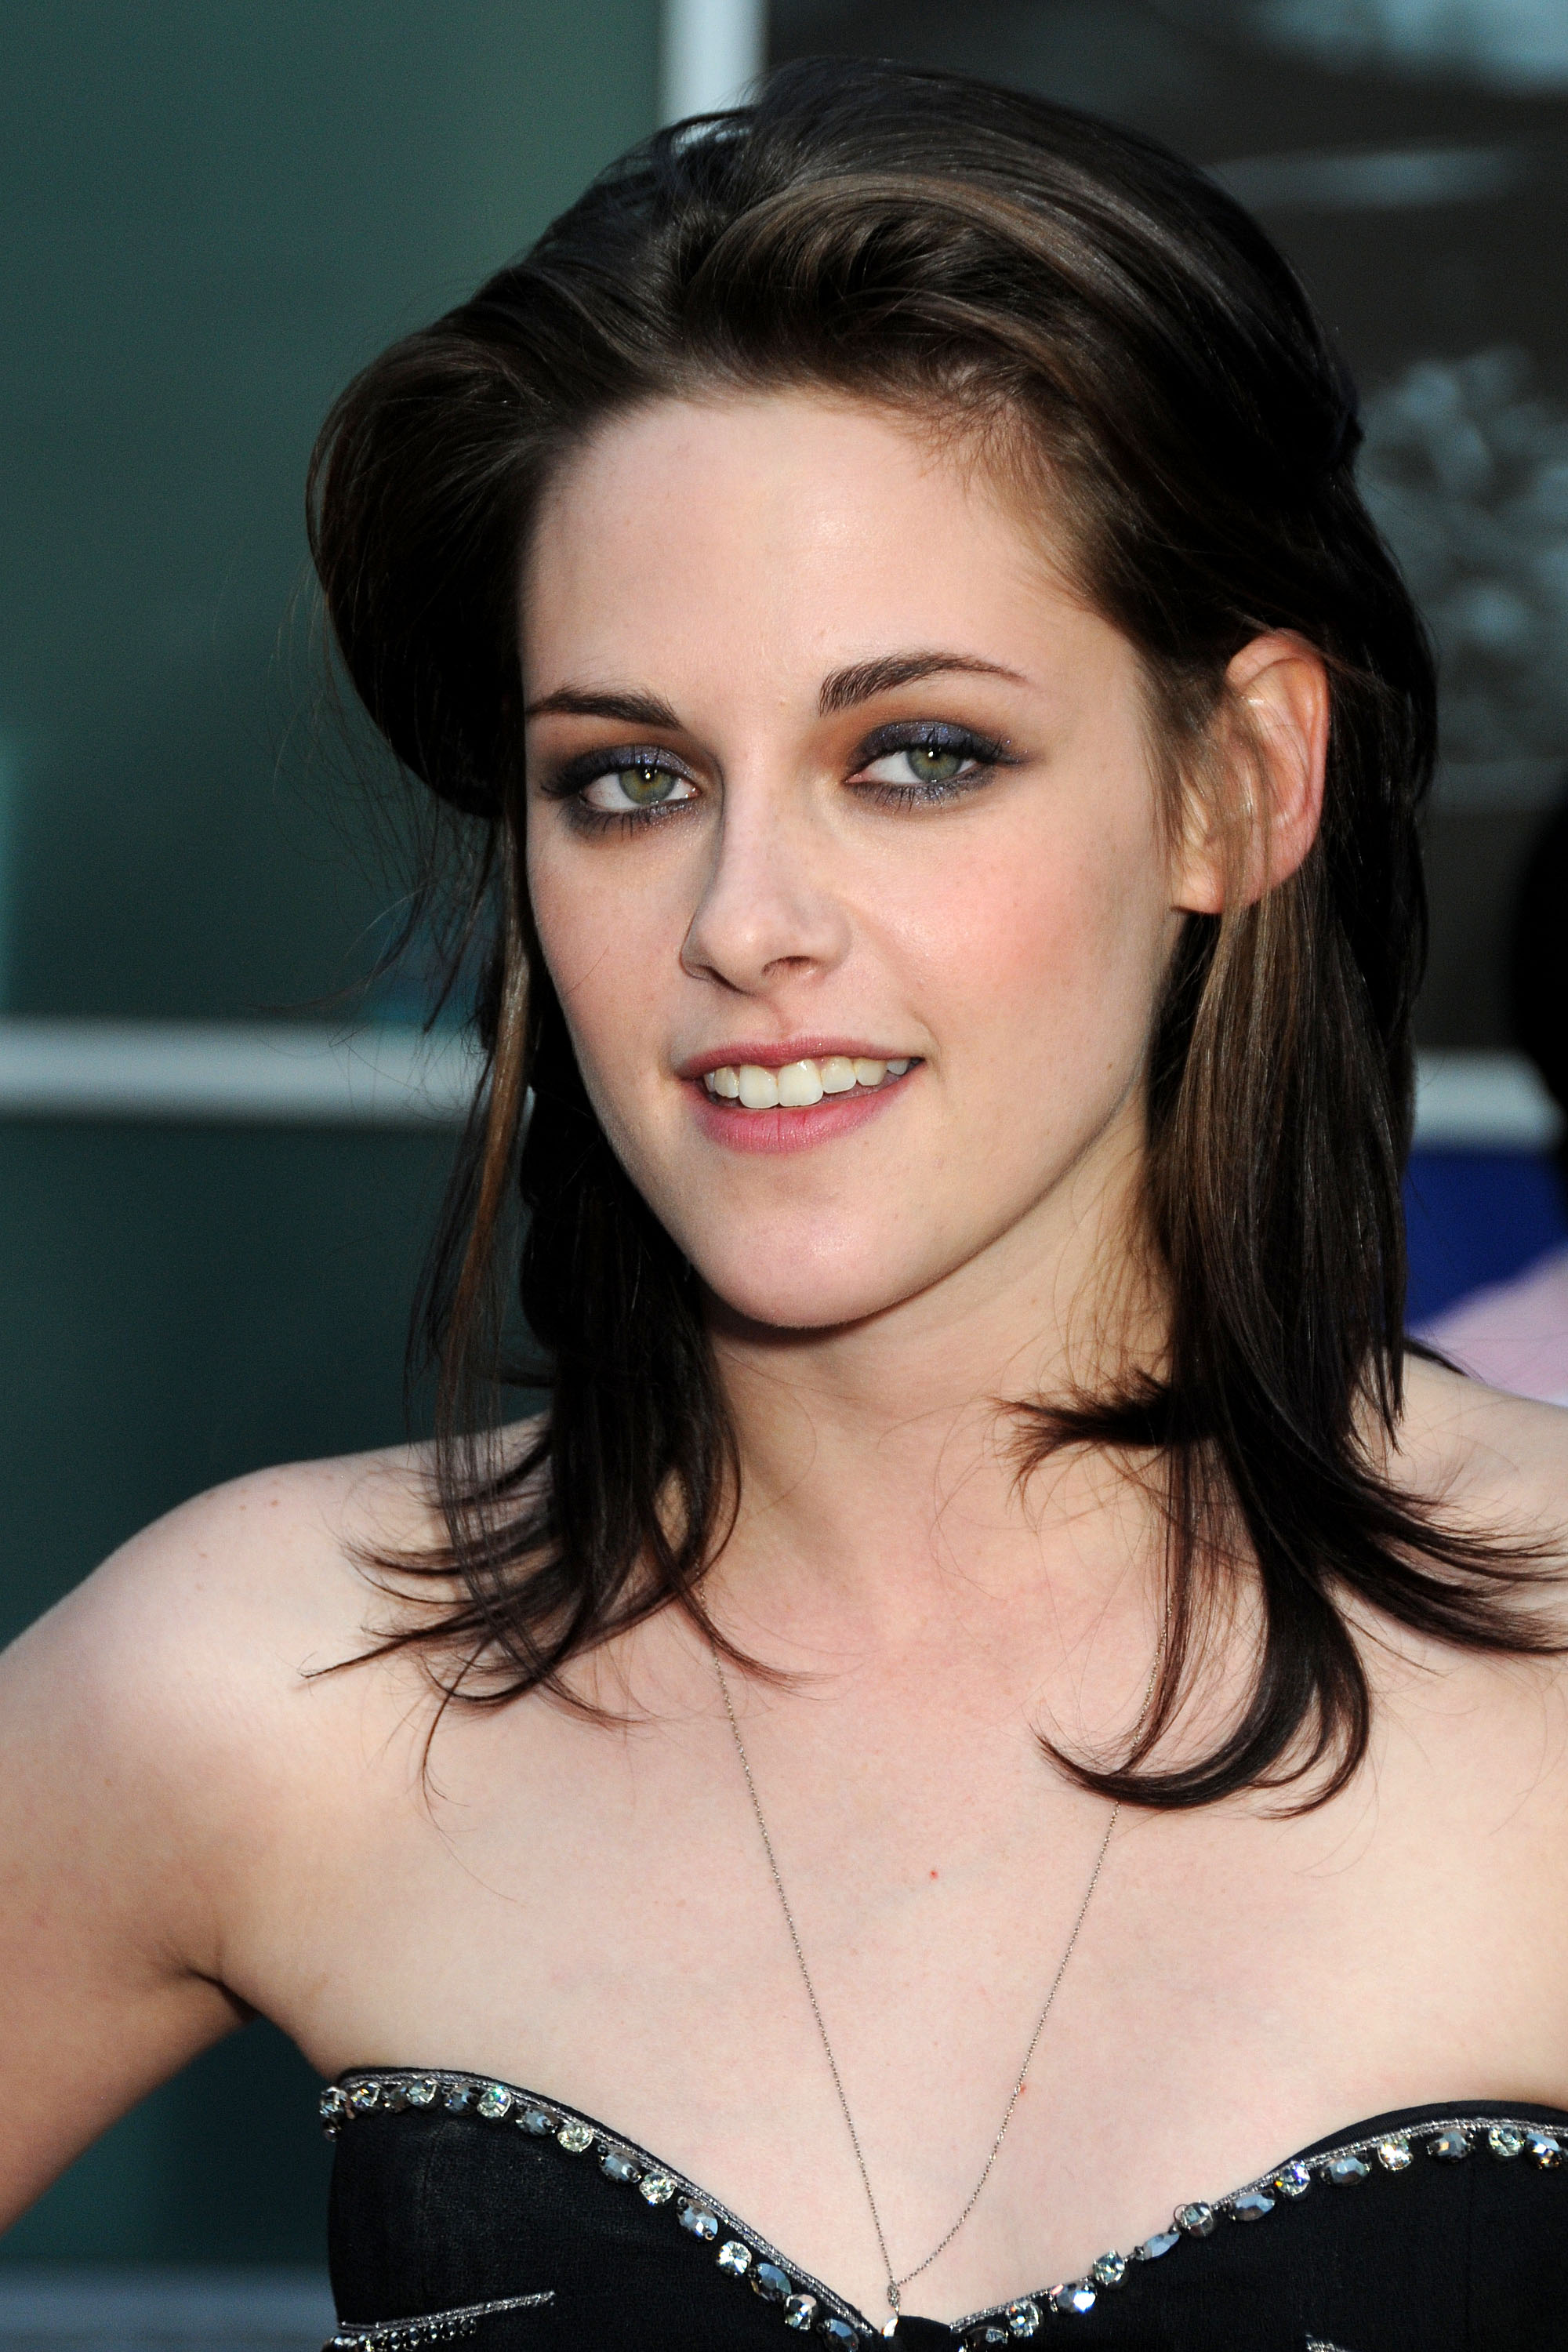 Kristen Stewart In Elle Magazine France November 2012: Kristen Stewart Pictures Gallery (55)